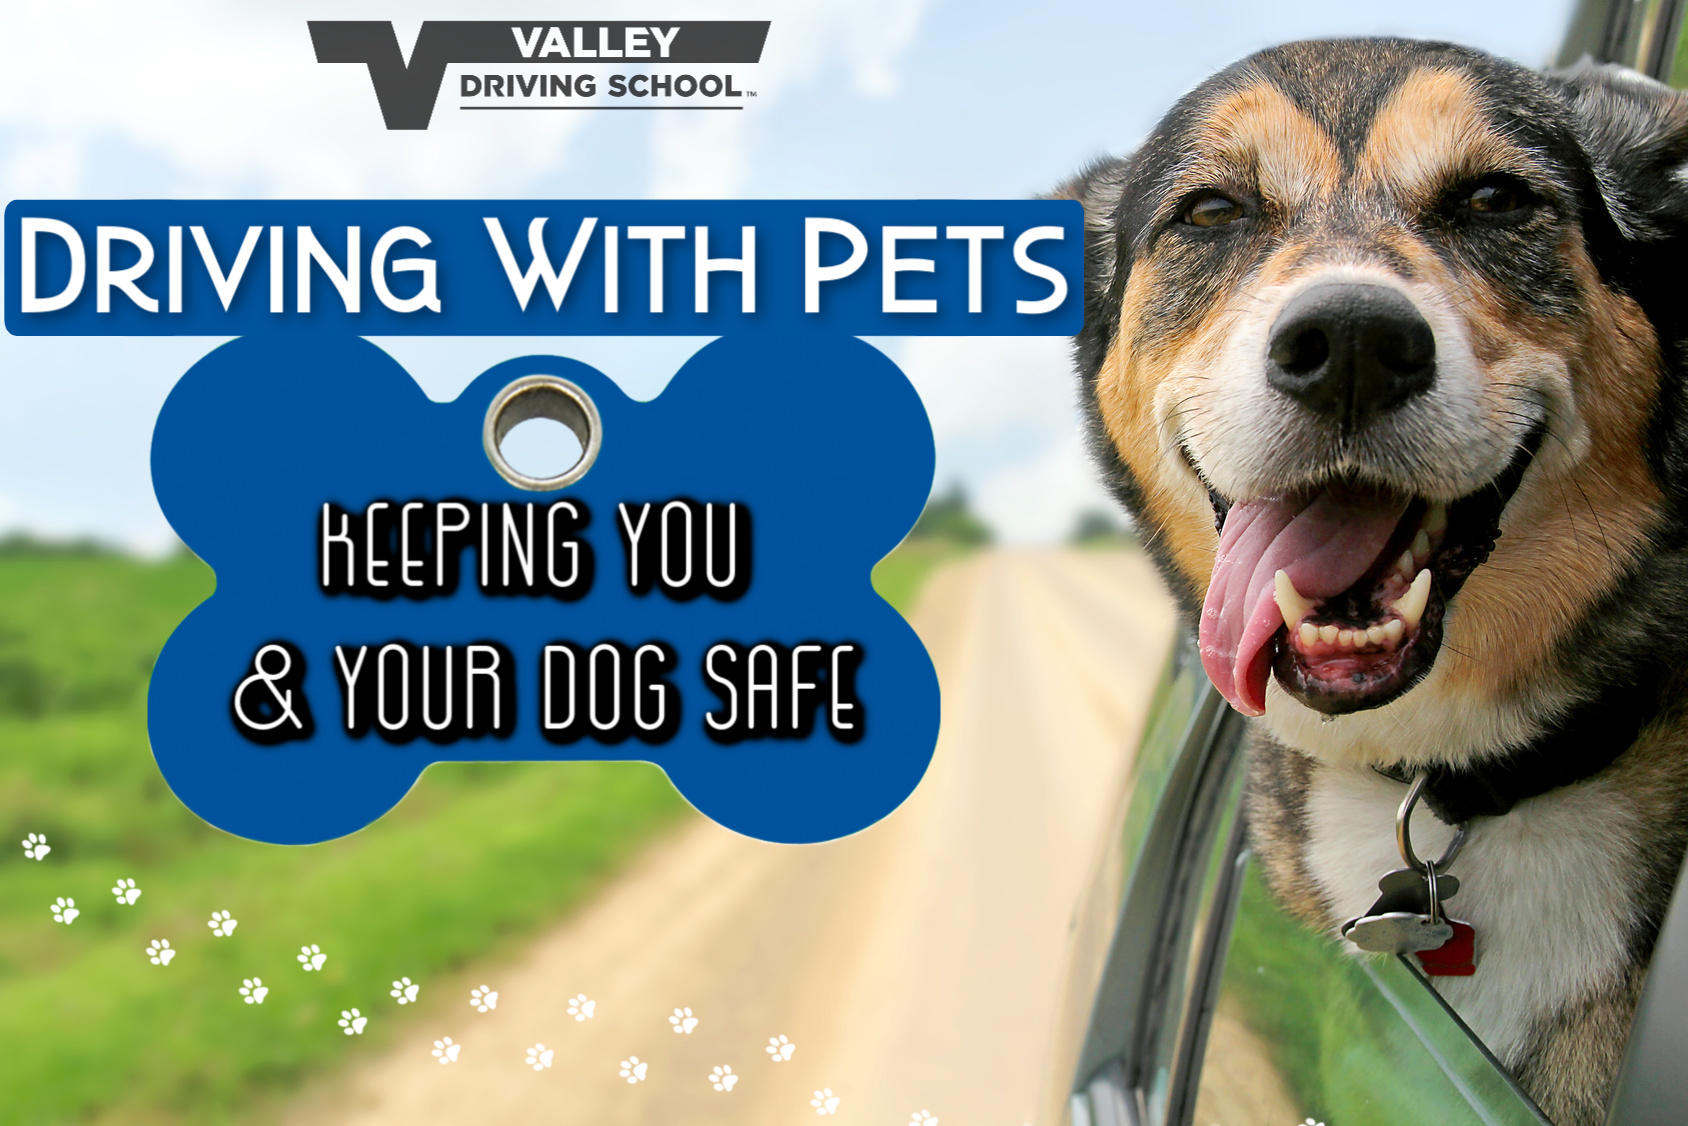 safely drive with your pets